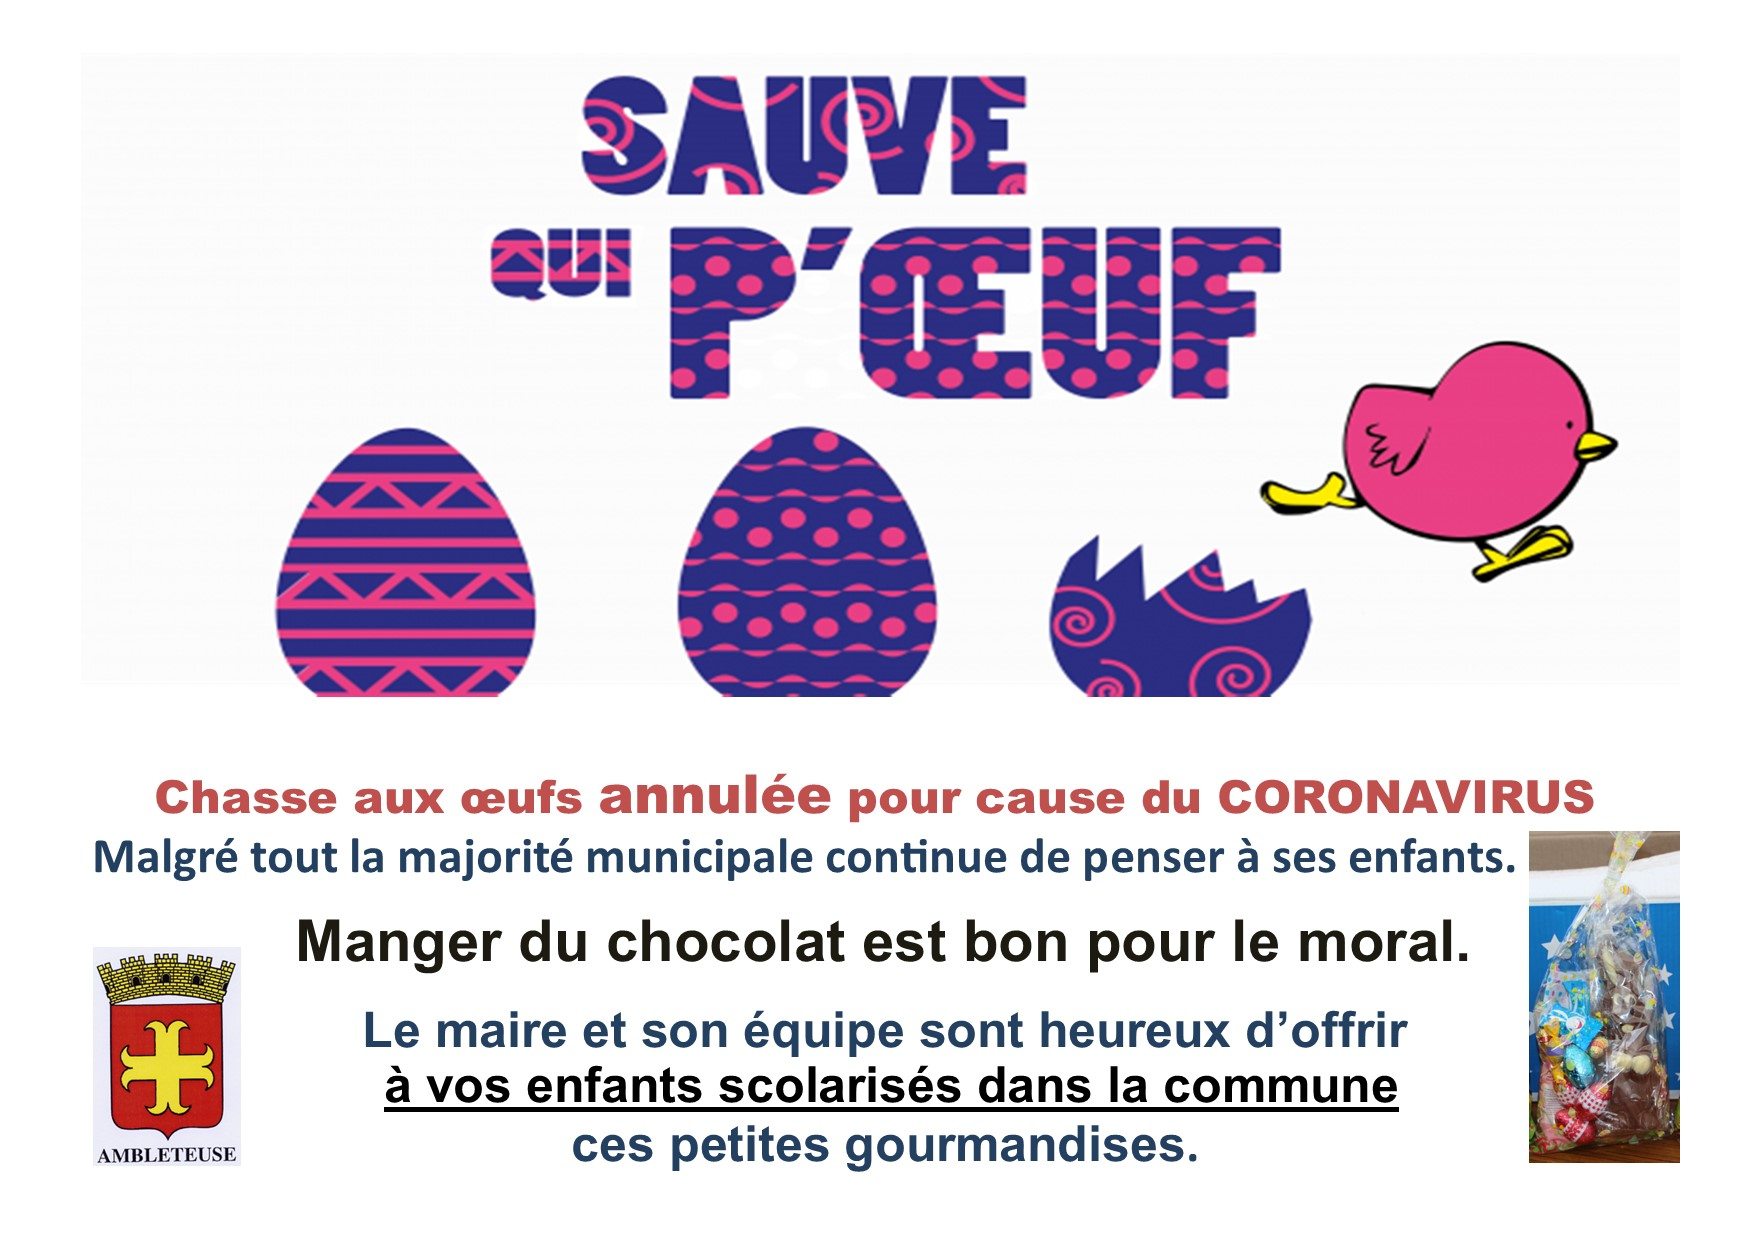 LA CHASSE AUX OEUFS ANNULEE.jpg